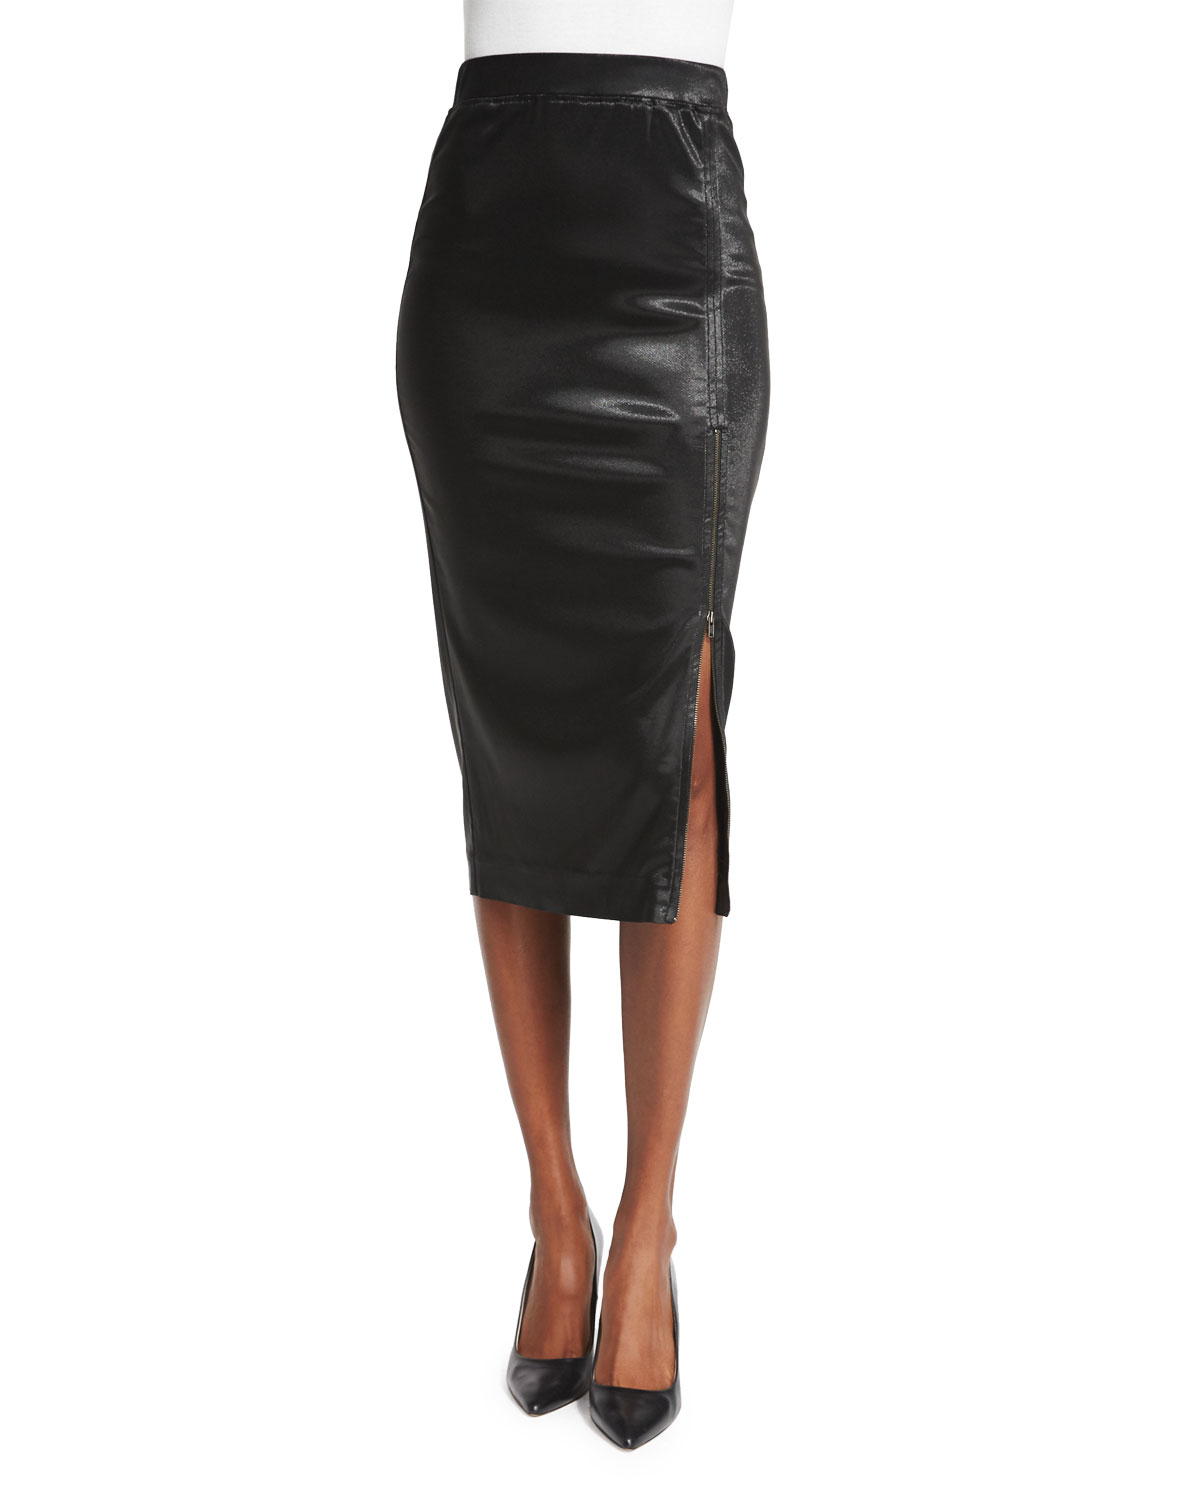 atm sparkle zip pencil skirt in black lyst